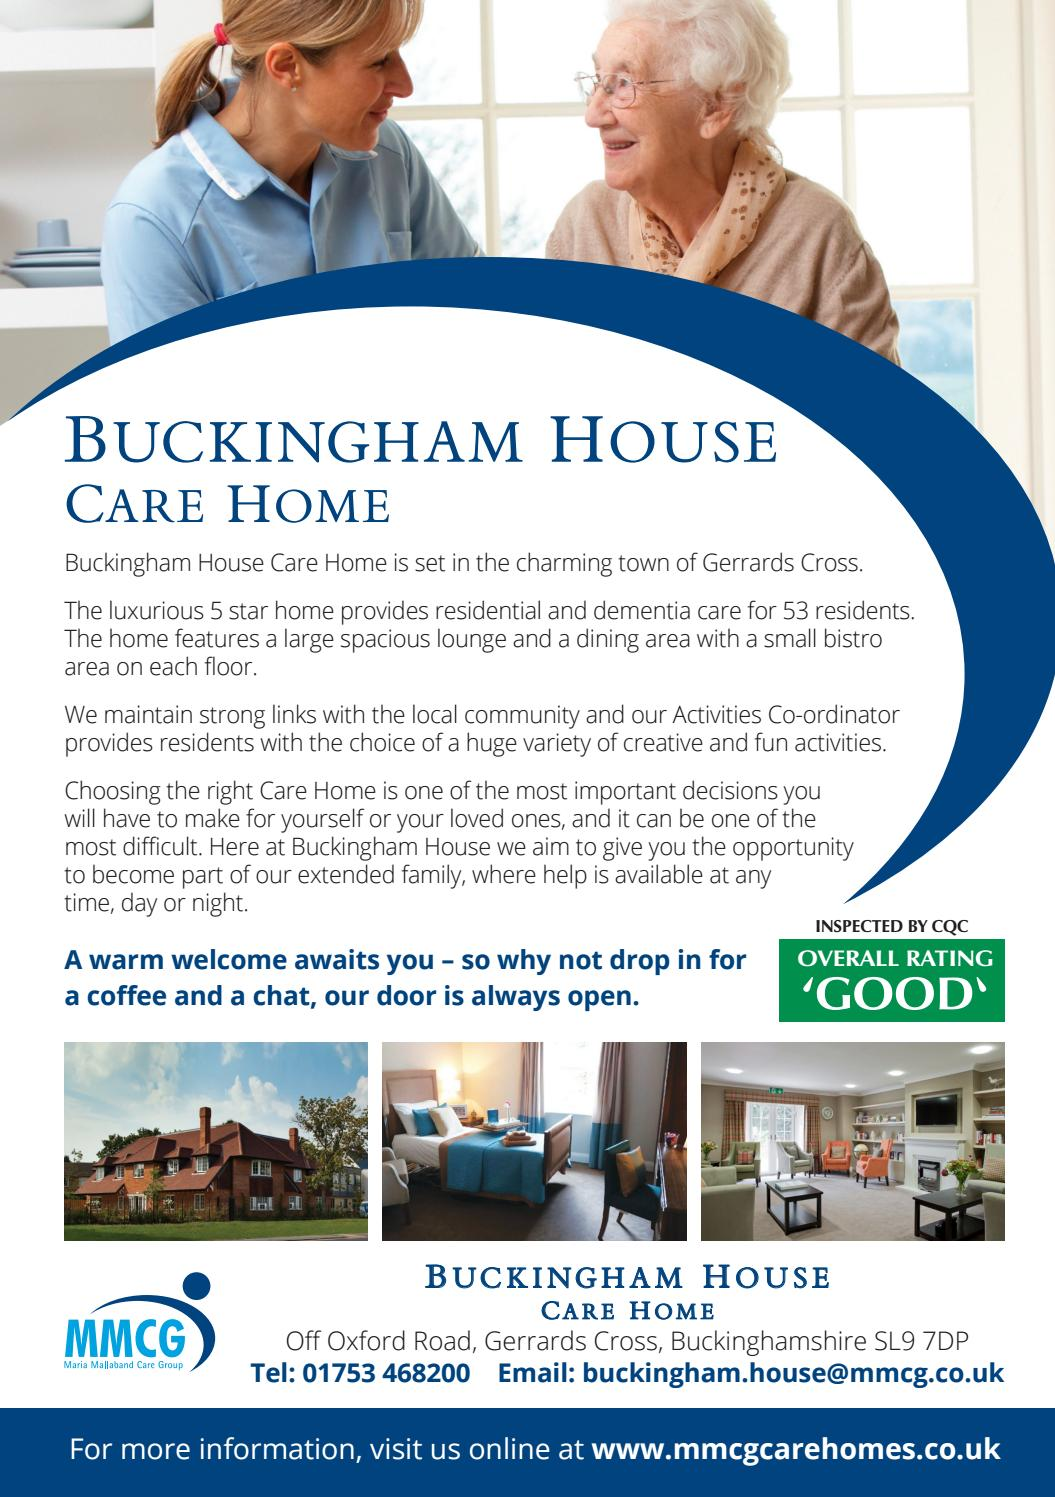 Beaconsfield local may june 2017 by kay hicks issuu for Buckingham choice floor plans